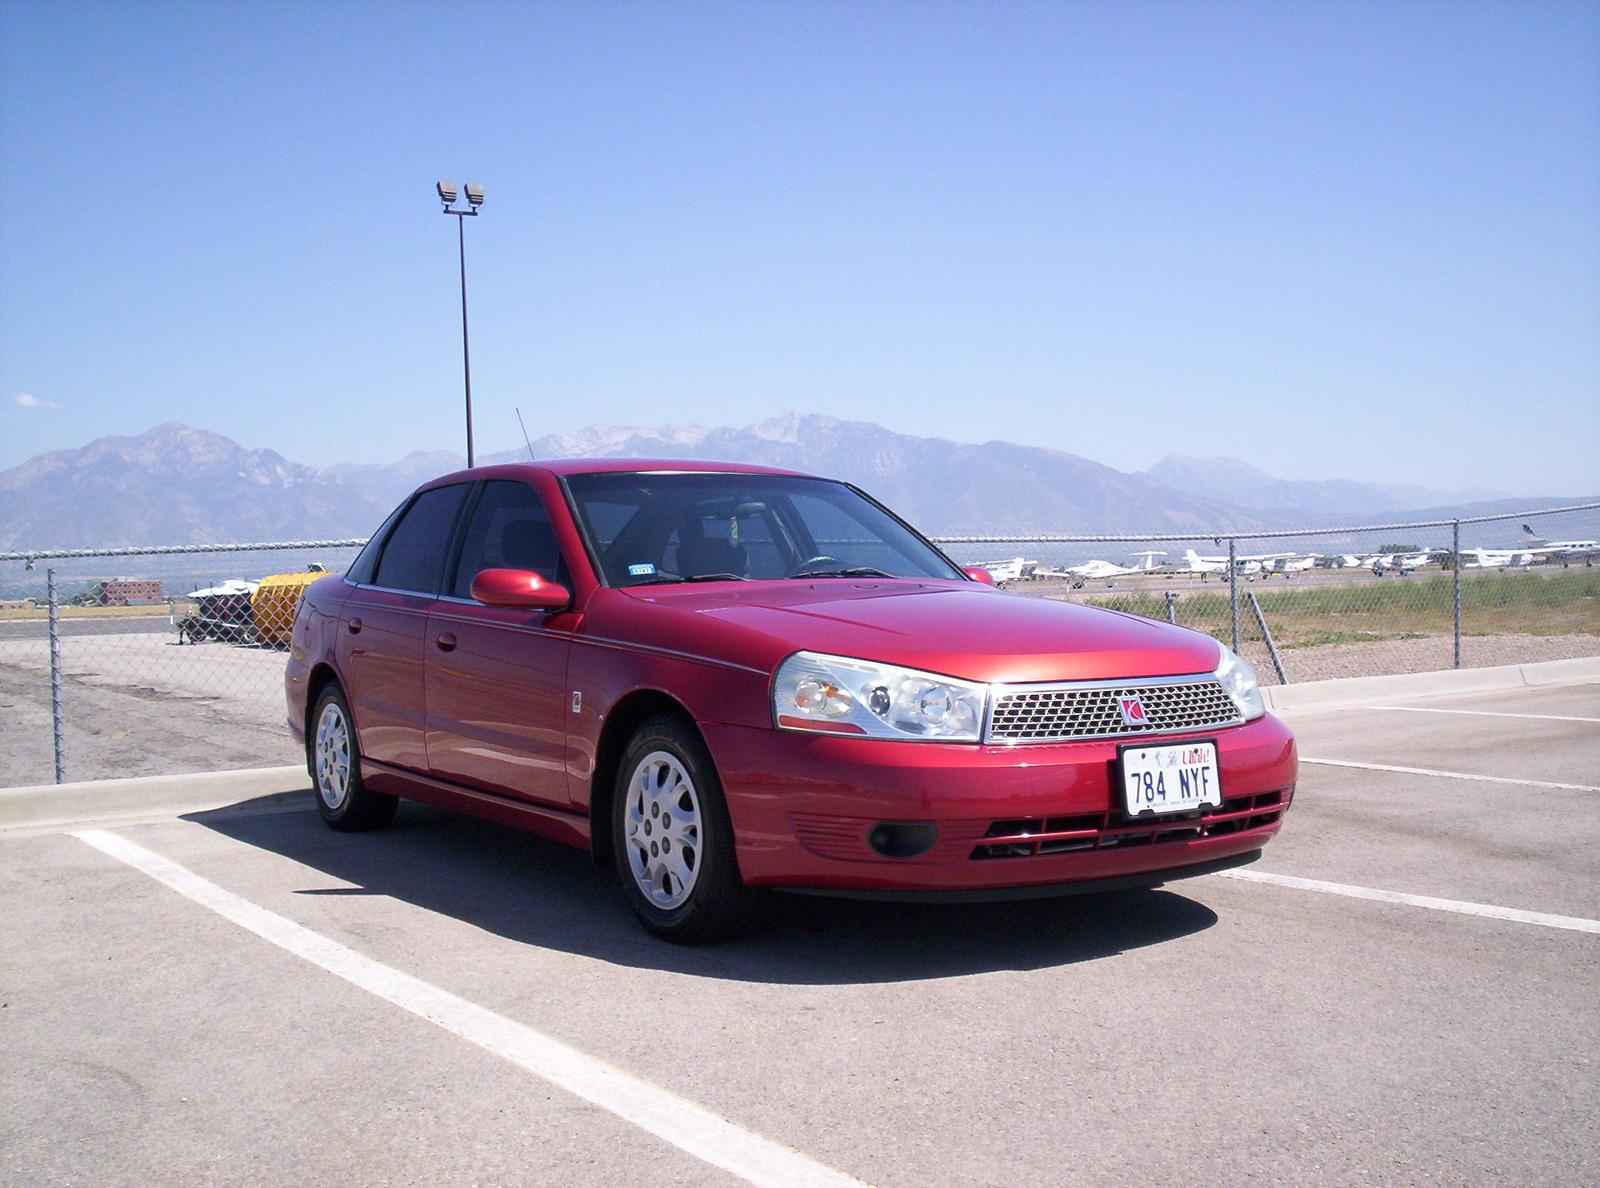 2003 saturn l series information and photos zombiedrive 800 1024 1280 1600 origin 2003 saturn l series vanachro Images